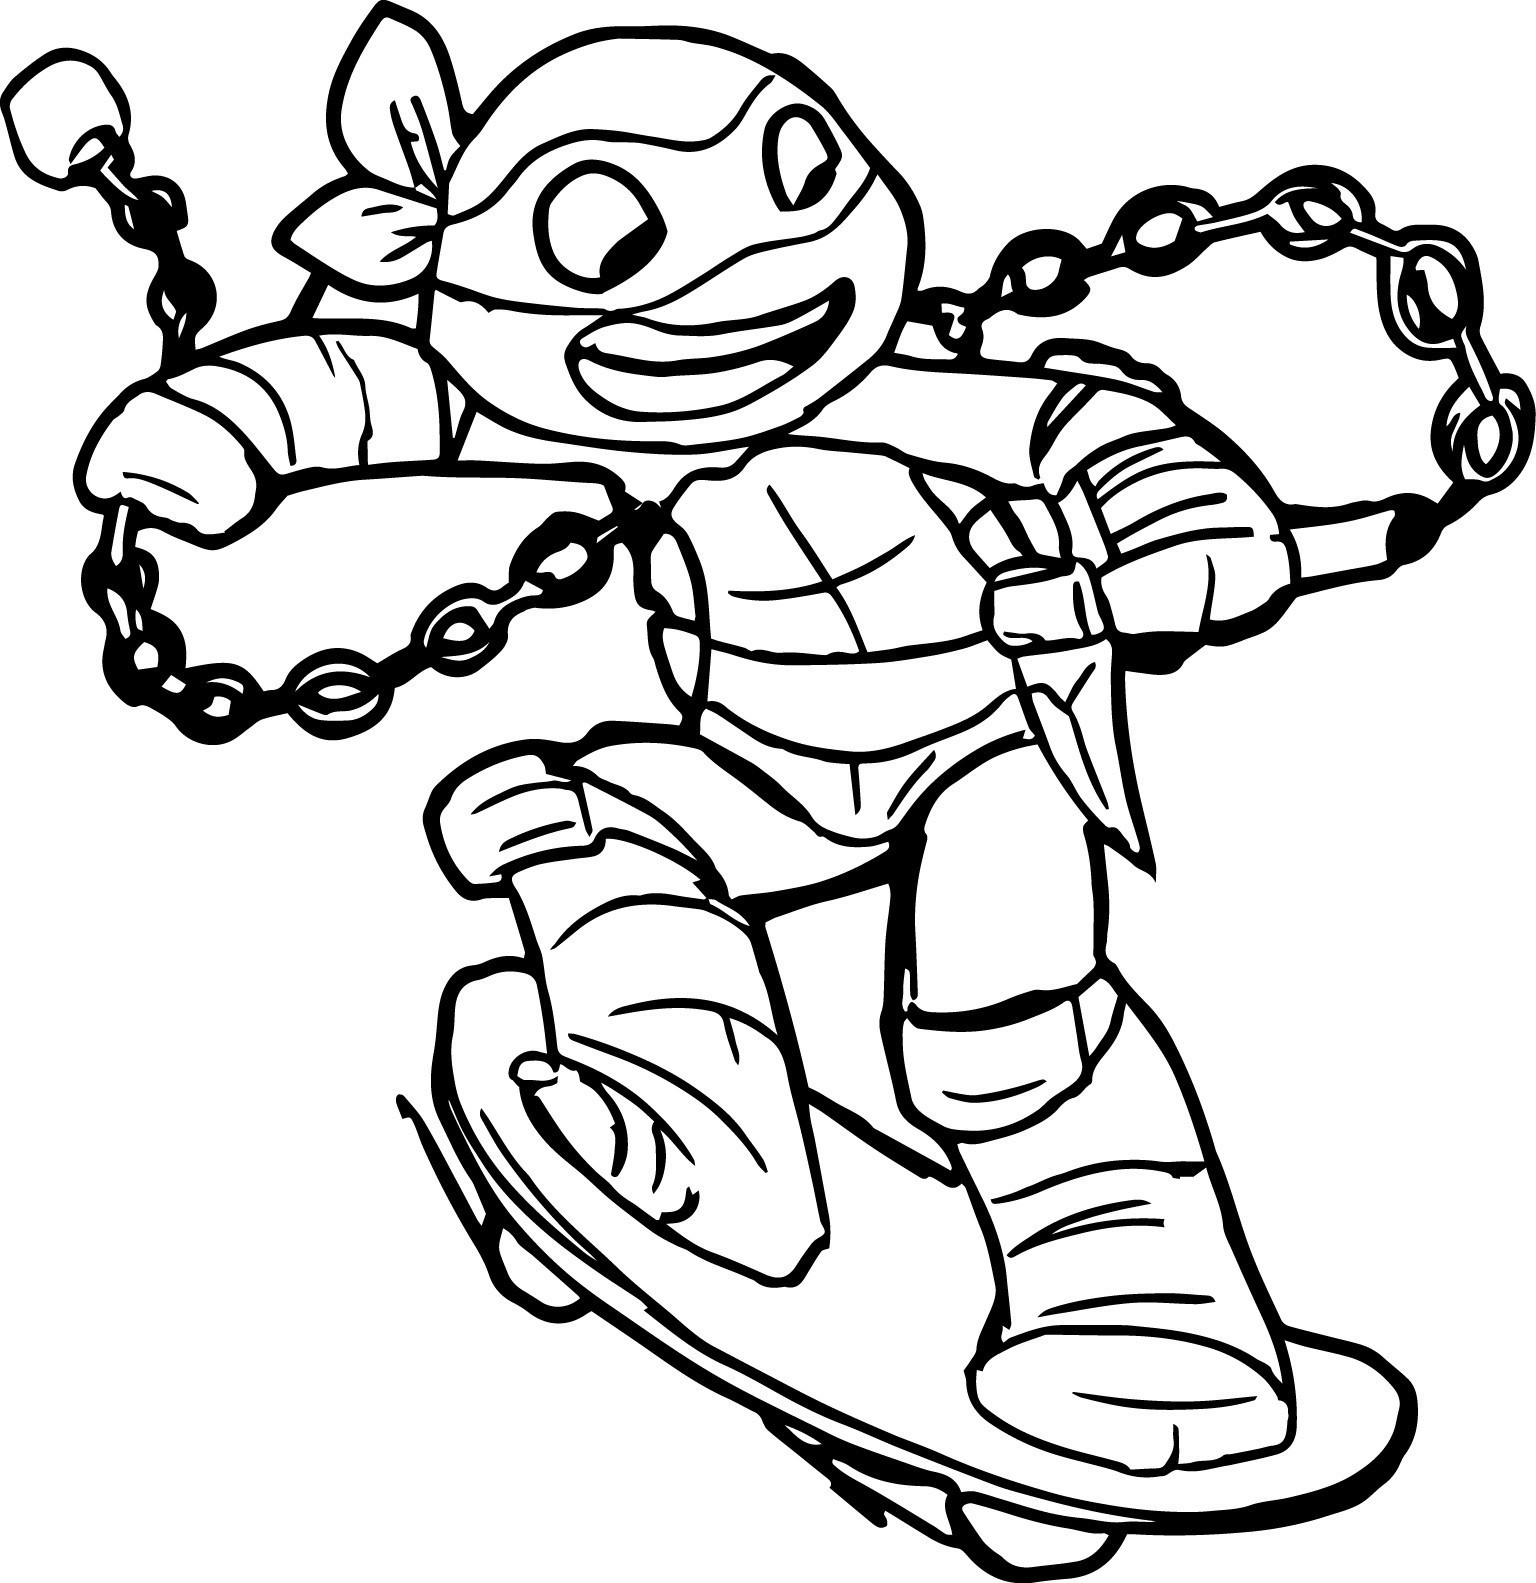 Teenage Mutant Ninja Turtles Coloring Pages - Best ...